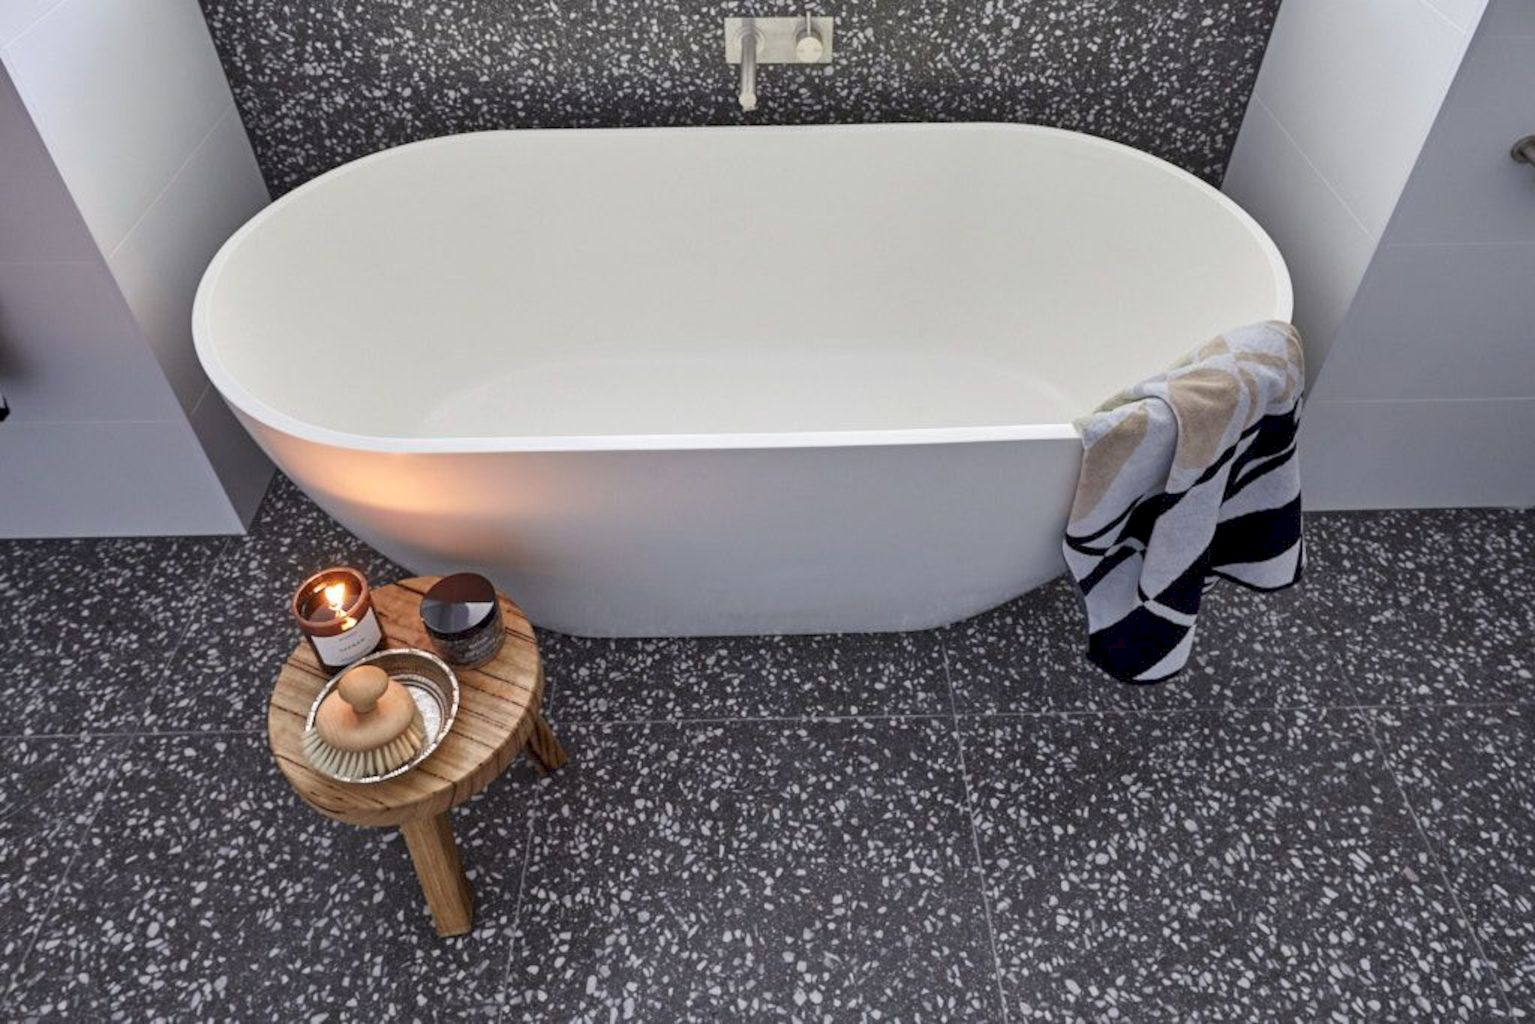 Terrazzo tiles used in bathroom renovation showing classical comeback that bring an artistic retro statement in your home Image 47